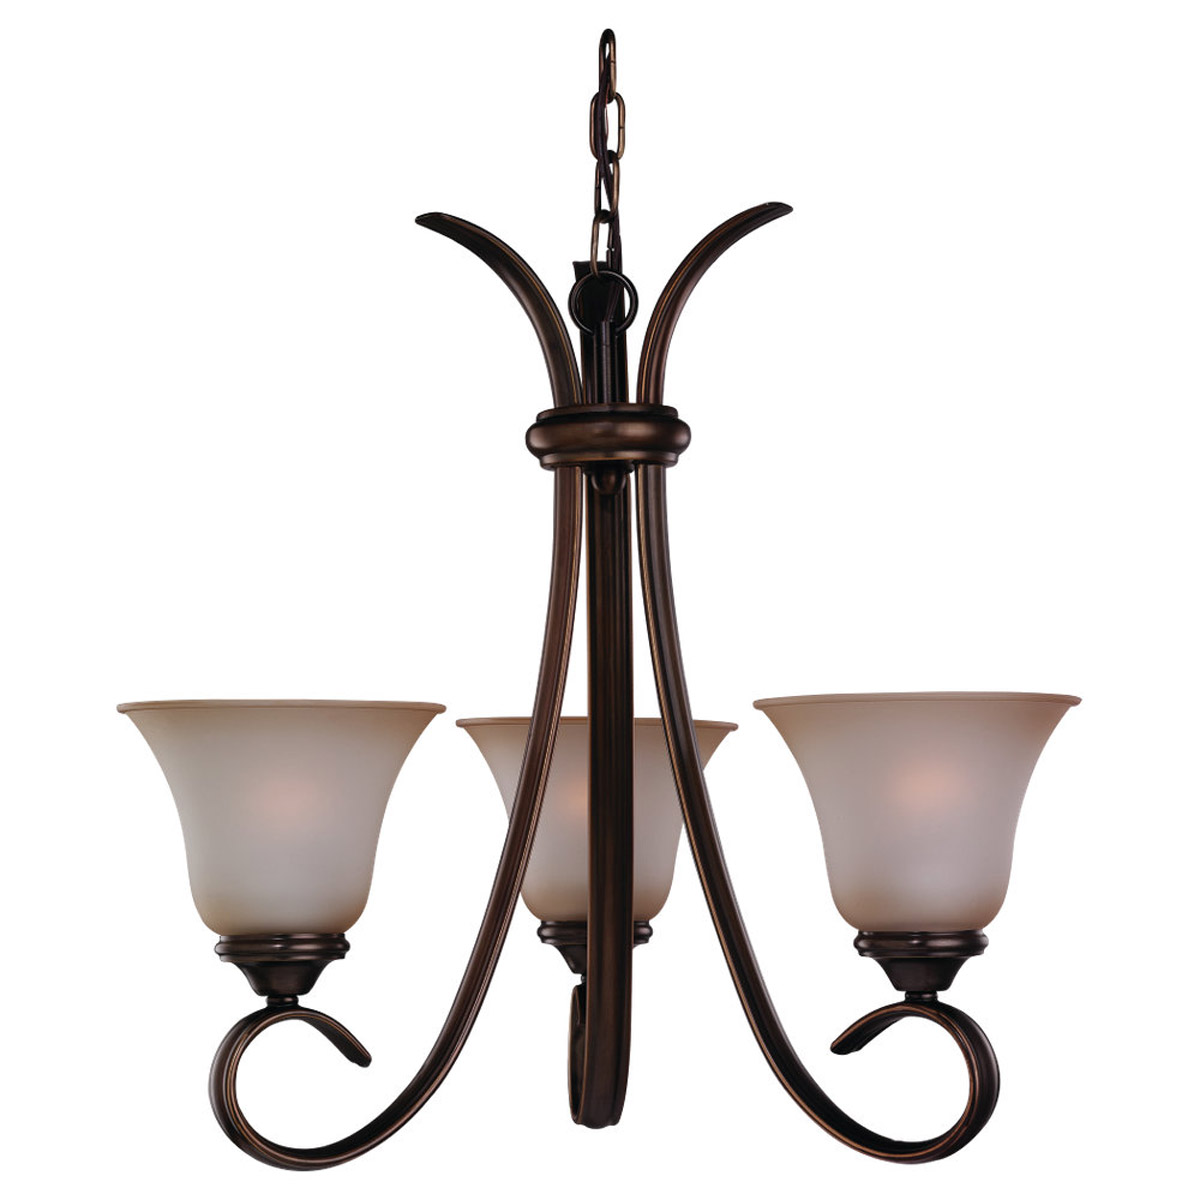 Sea Gull 31360-829 Rialto 3 Light 22 inch Russet Bronze Chandelier Ceiling Light in Ginger Glass photo